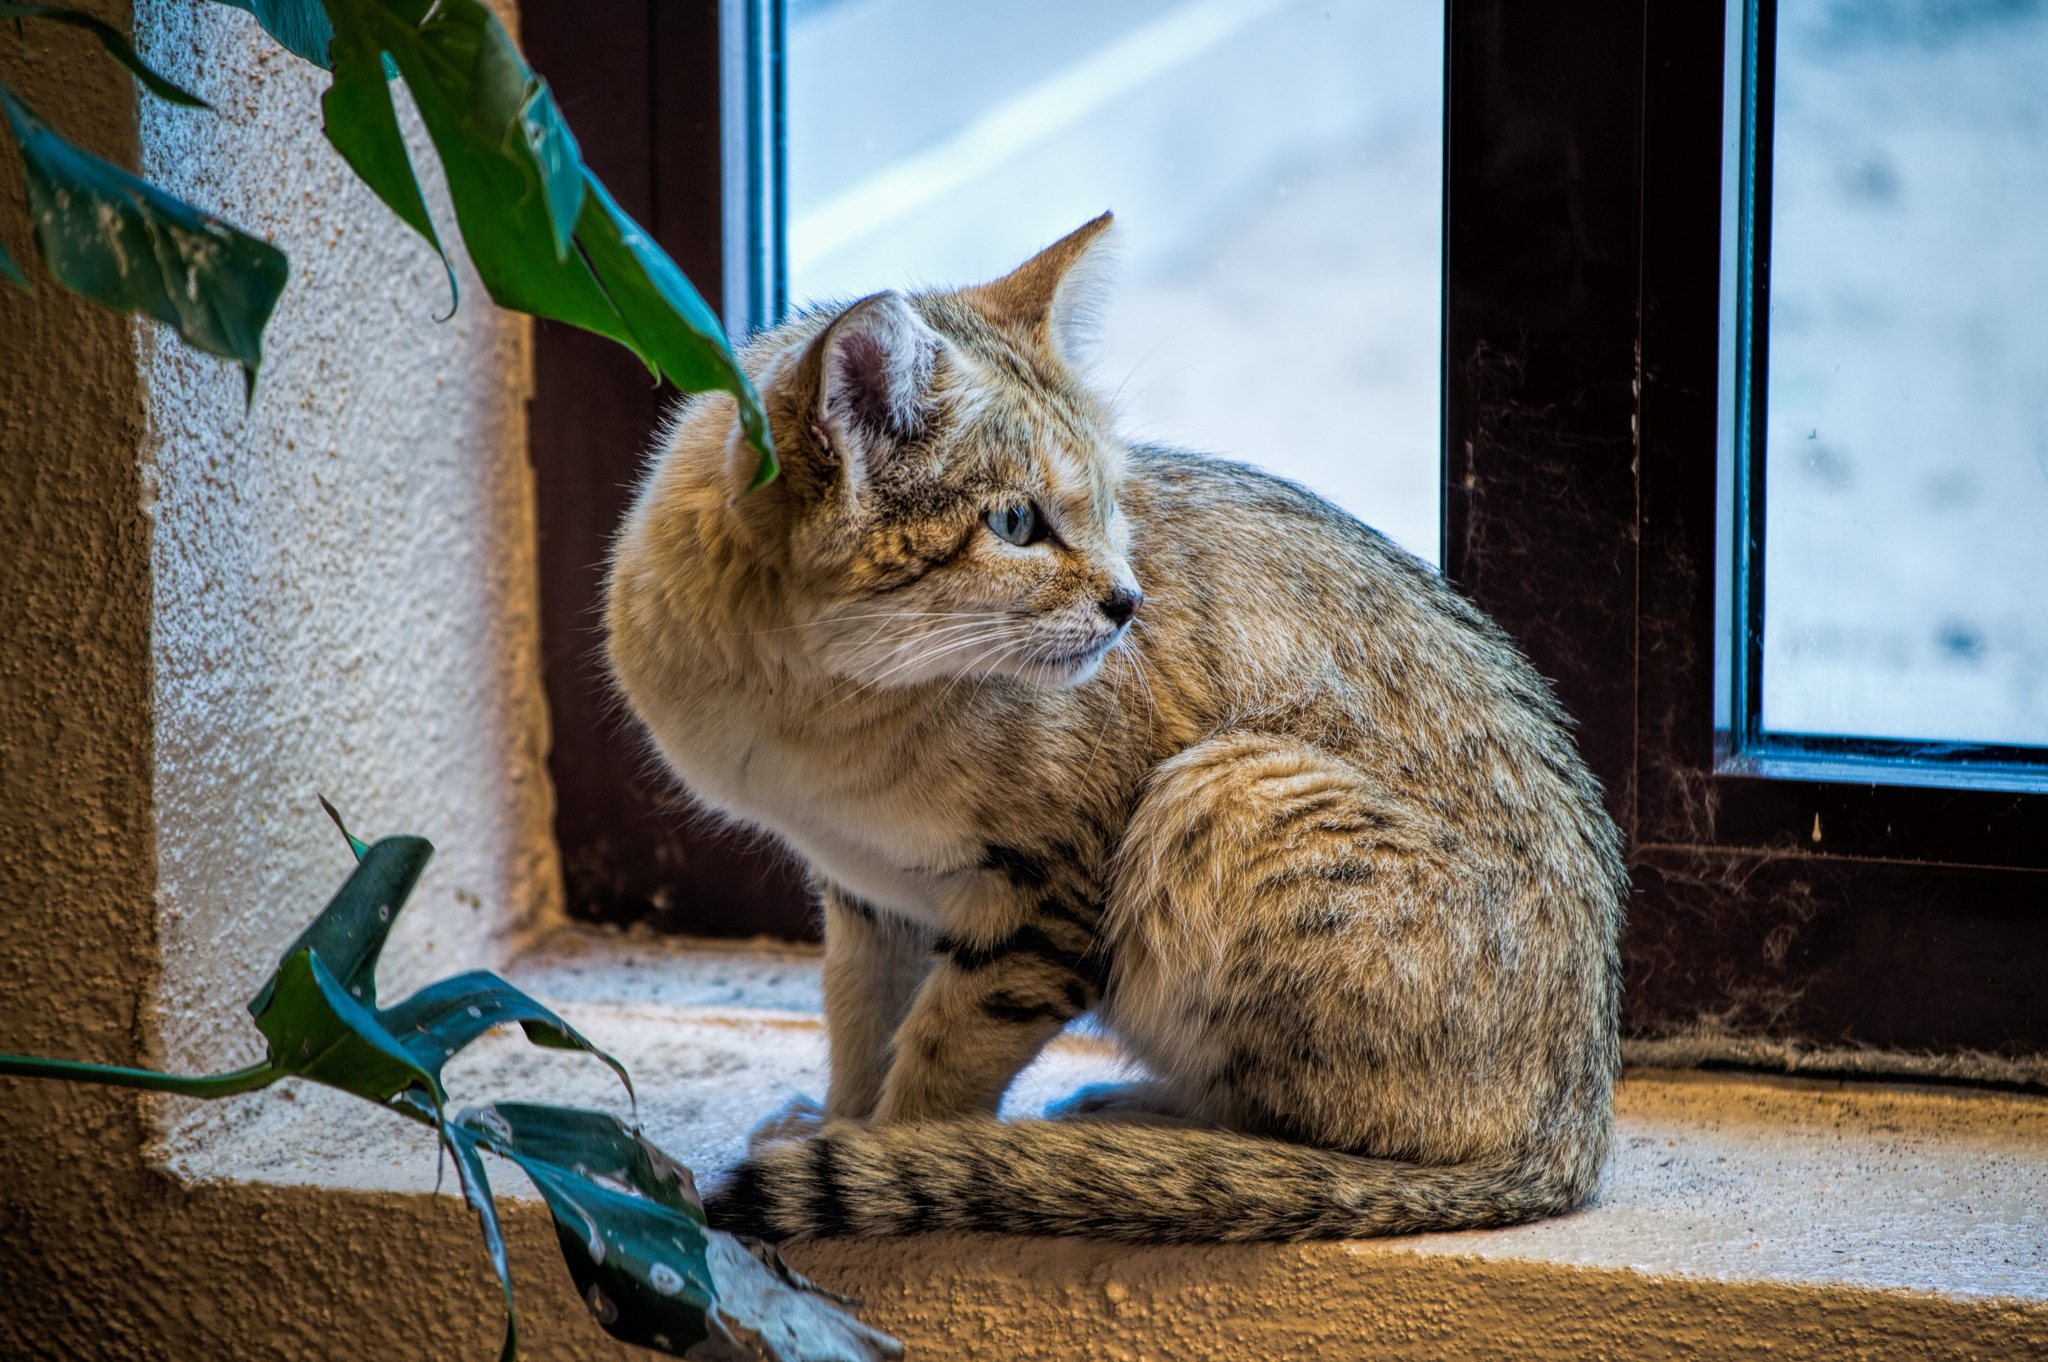 The sand cat by Micke Seise